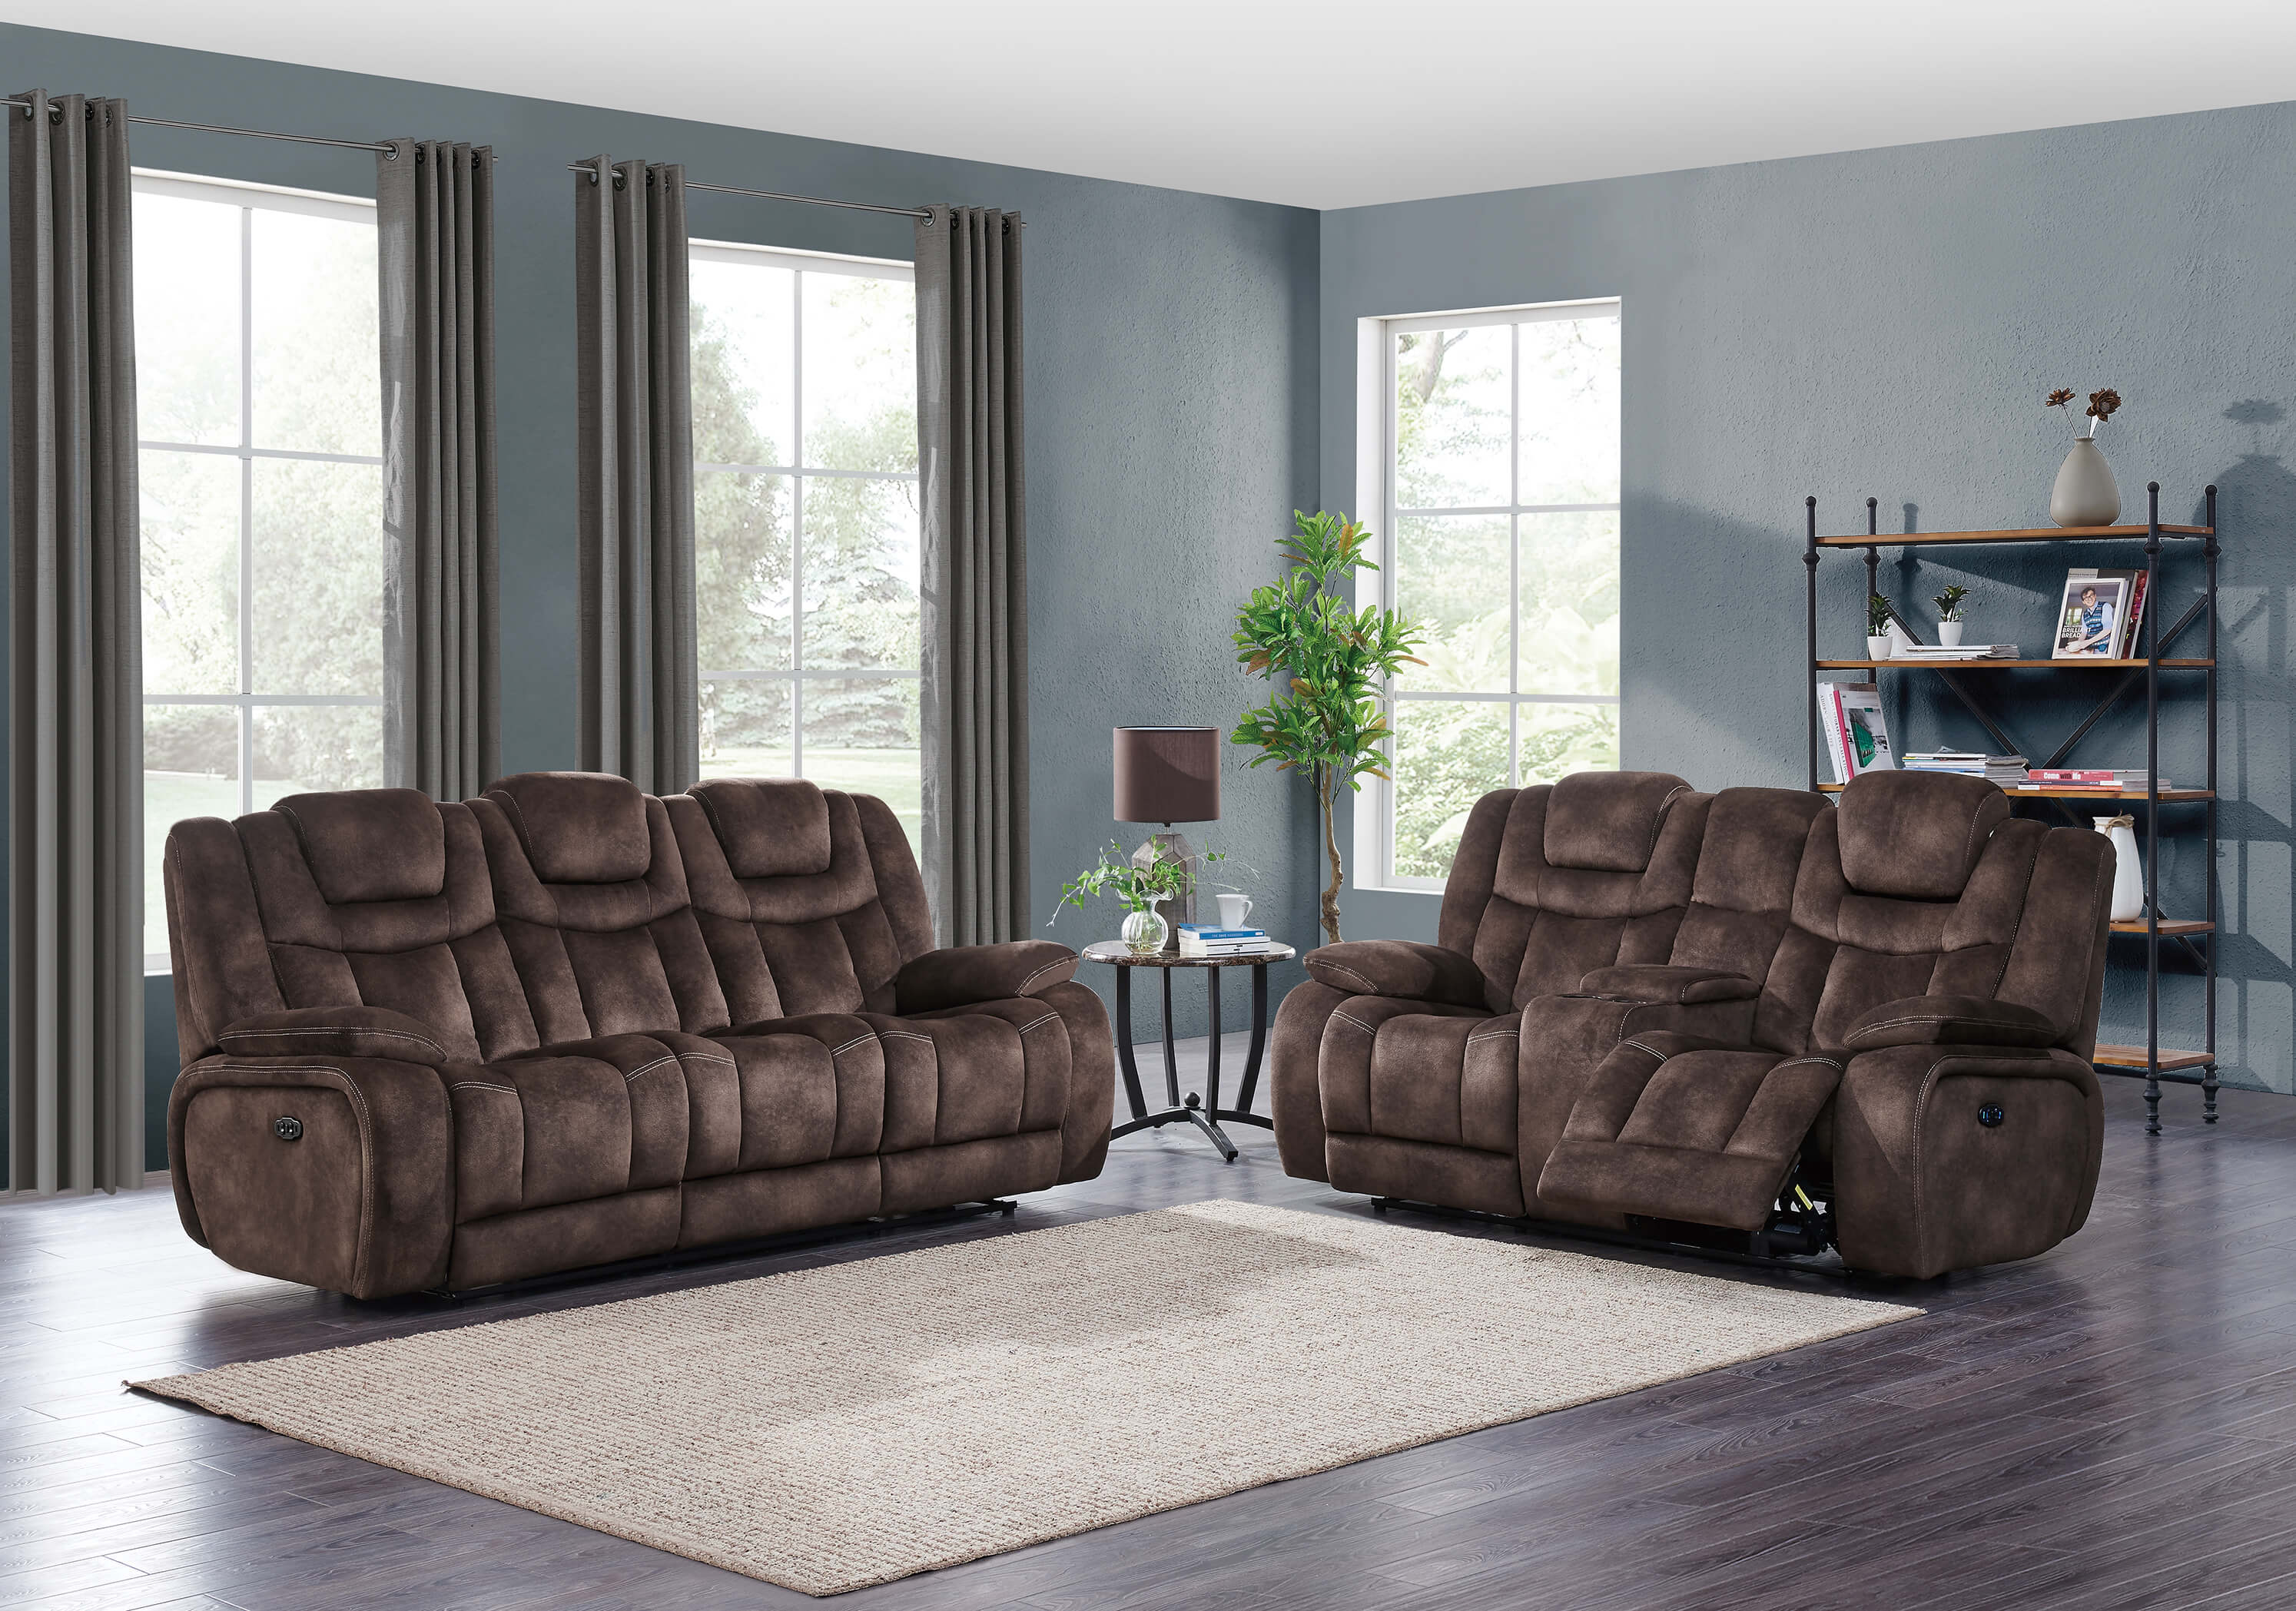 Sofa Perfect Couch And Loveseat Sets For Your Living Room within Rooms To Go Living Room Set